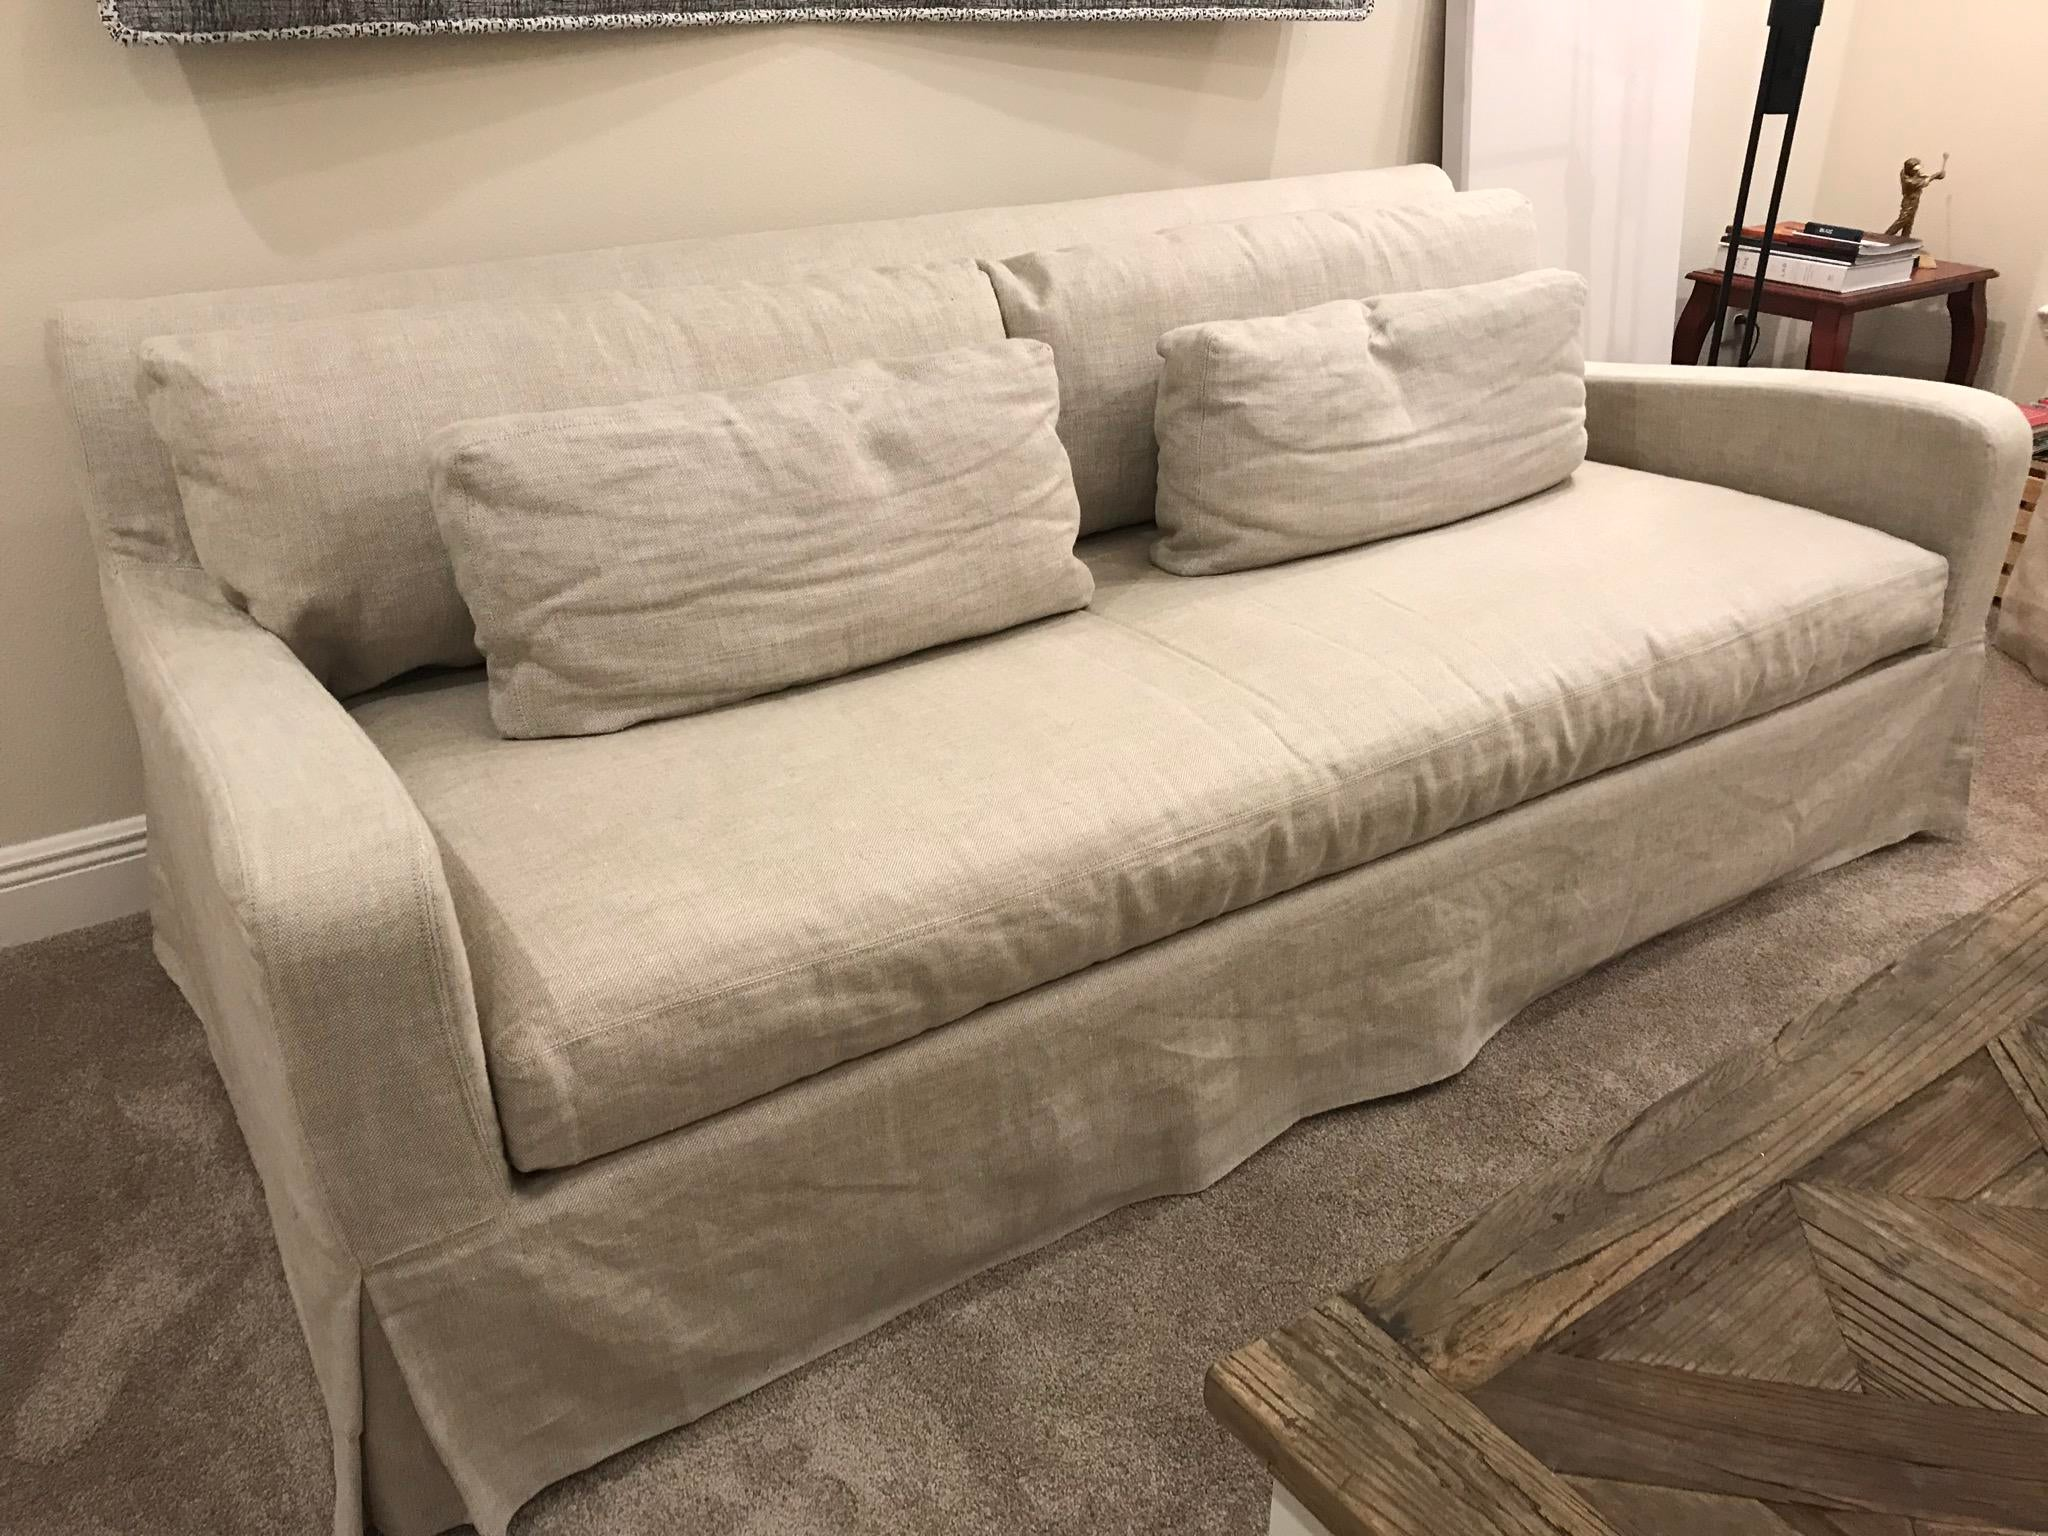 Marvelous Restoration Hardware Belgian Linen Sofa   Image 4 Of 5